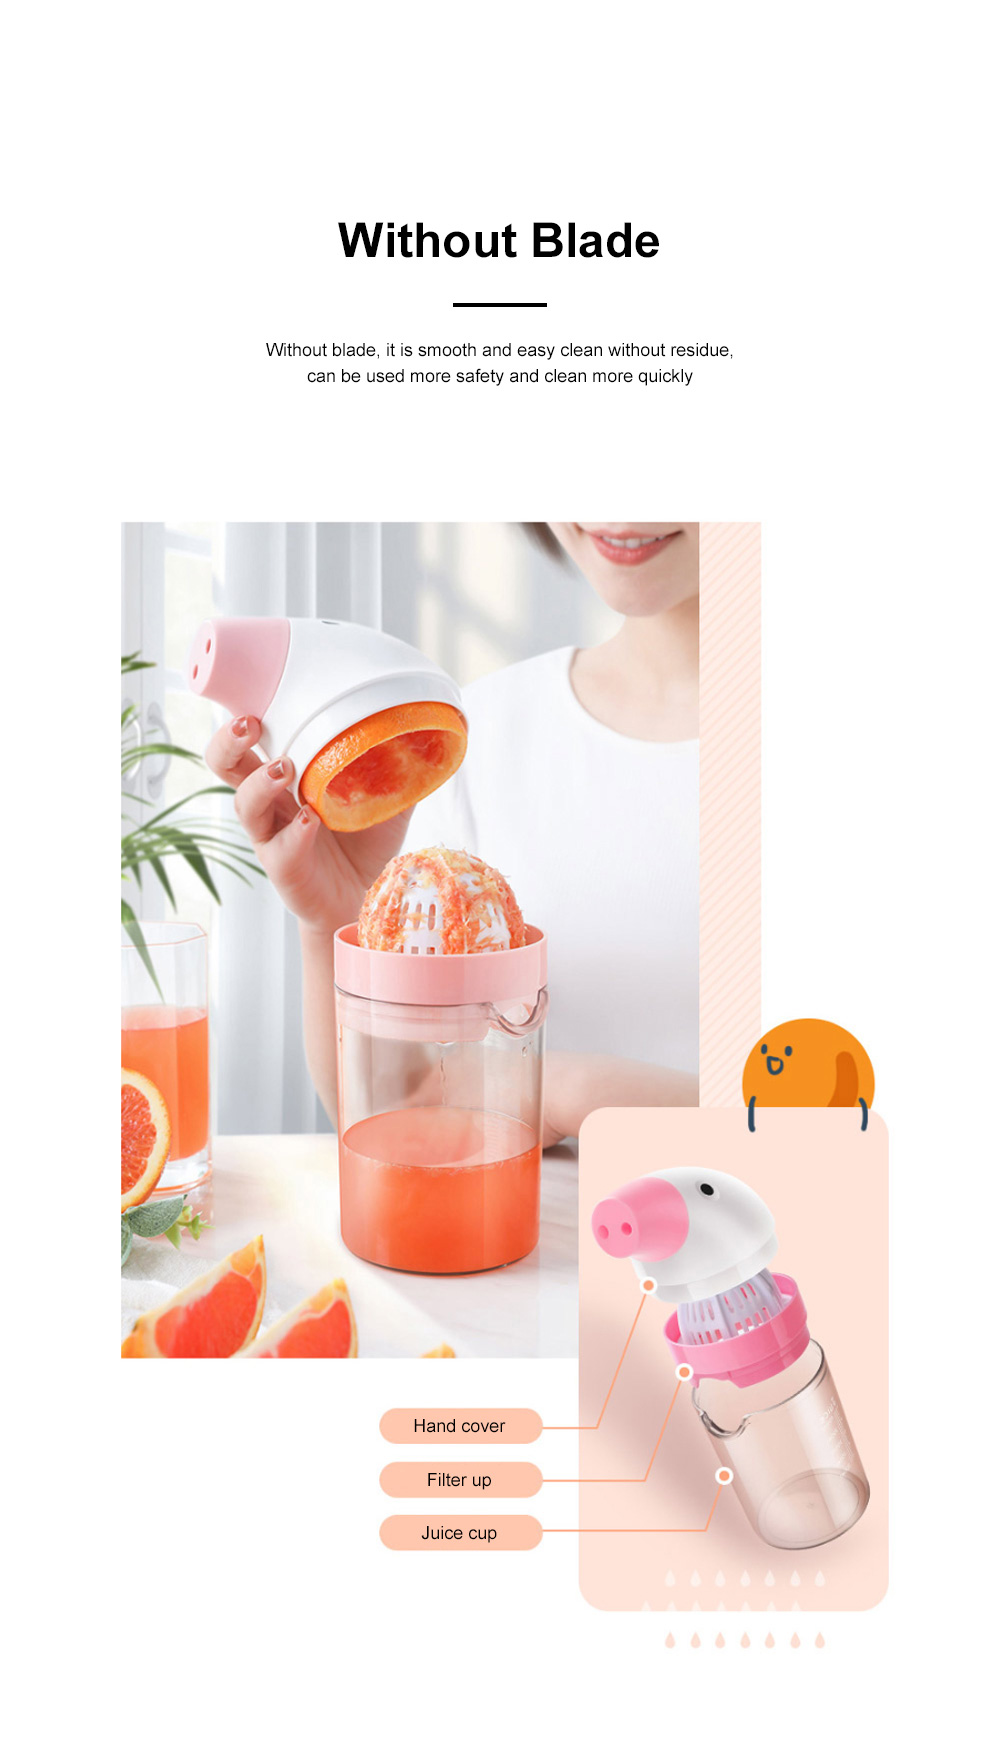 Simple Manual Juicer Cup Small Hand Shake Household Fruit Press Lemon Juice Artifact Hand Squeezed Juice Cup 2